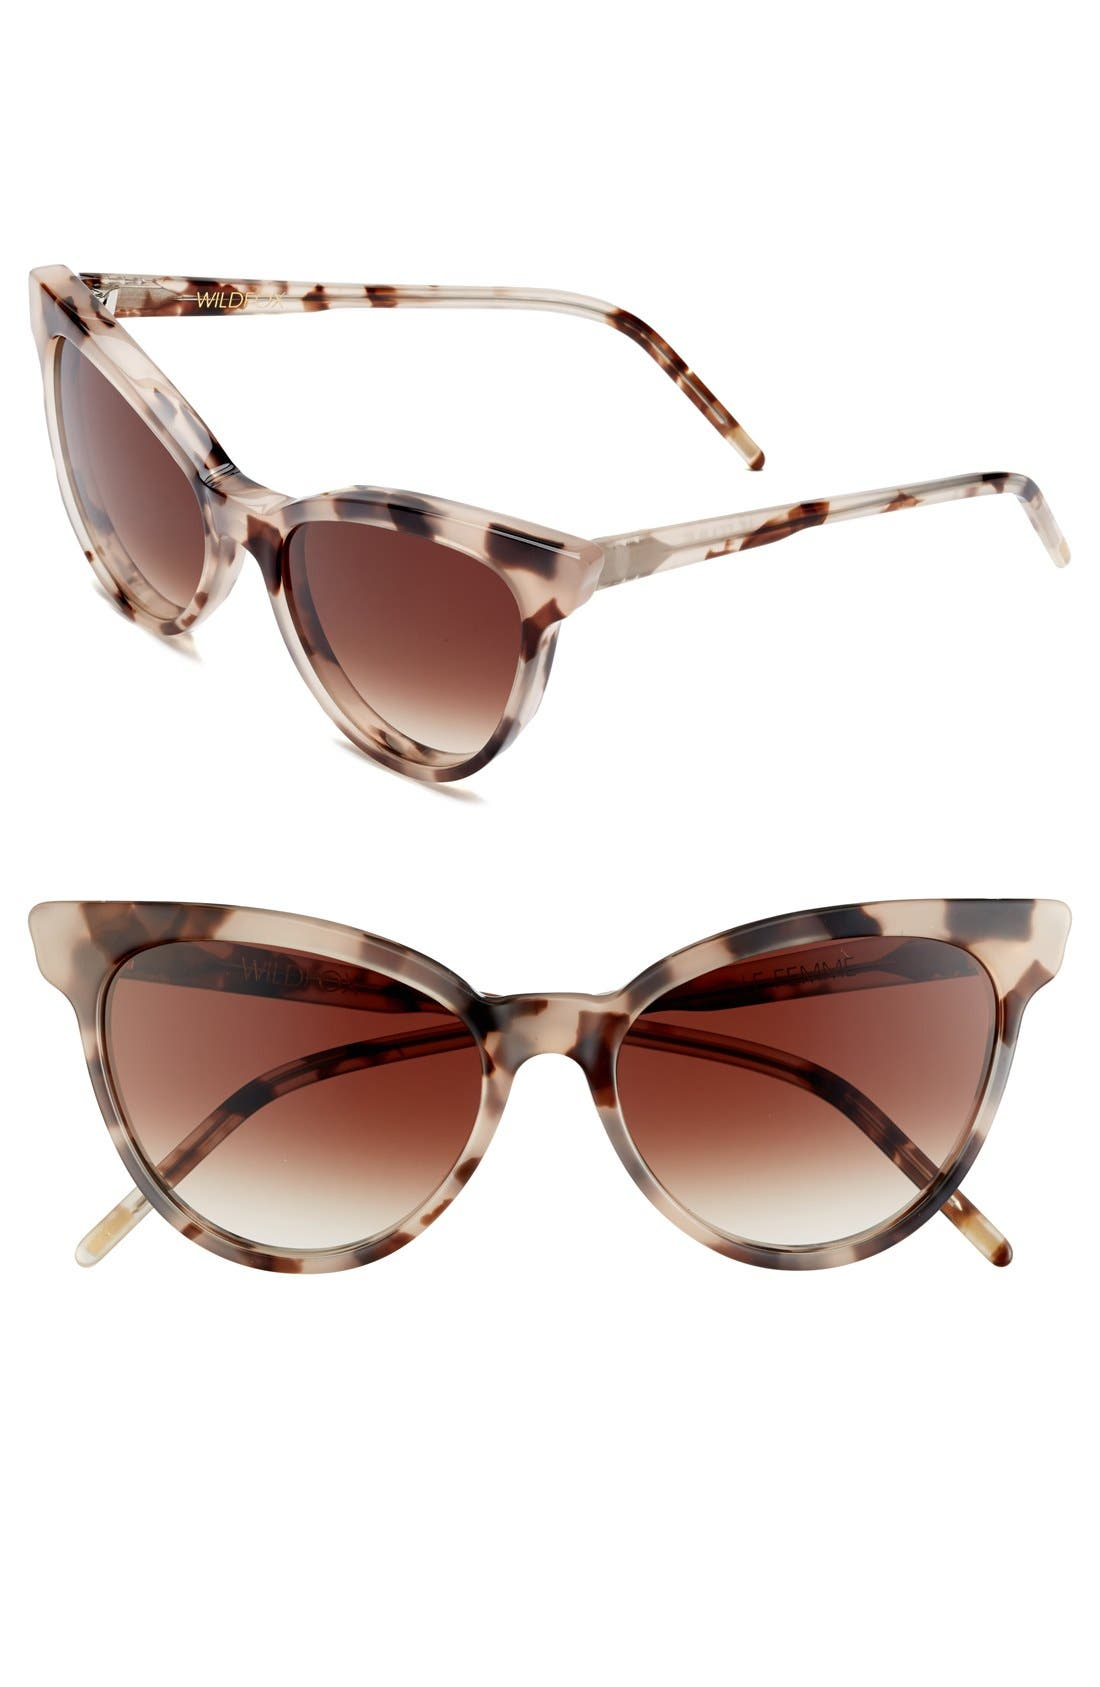 Alternate Image 1 Selected - Wildfox 'La Femme' 55mm Sunglasses